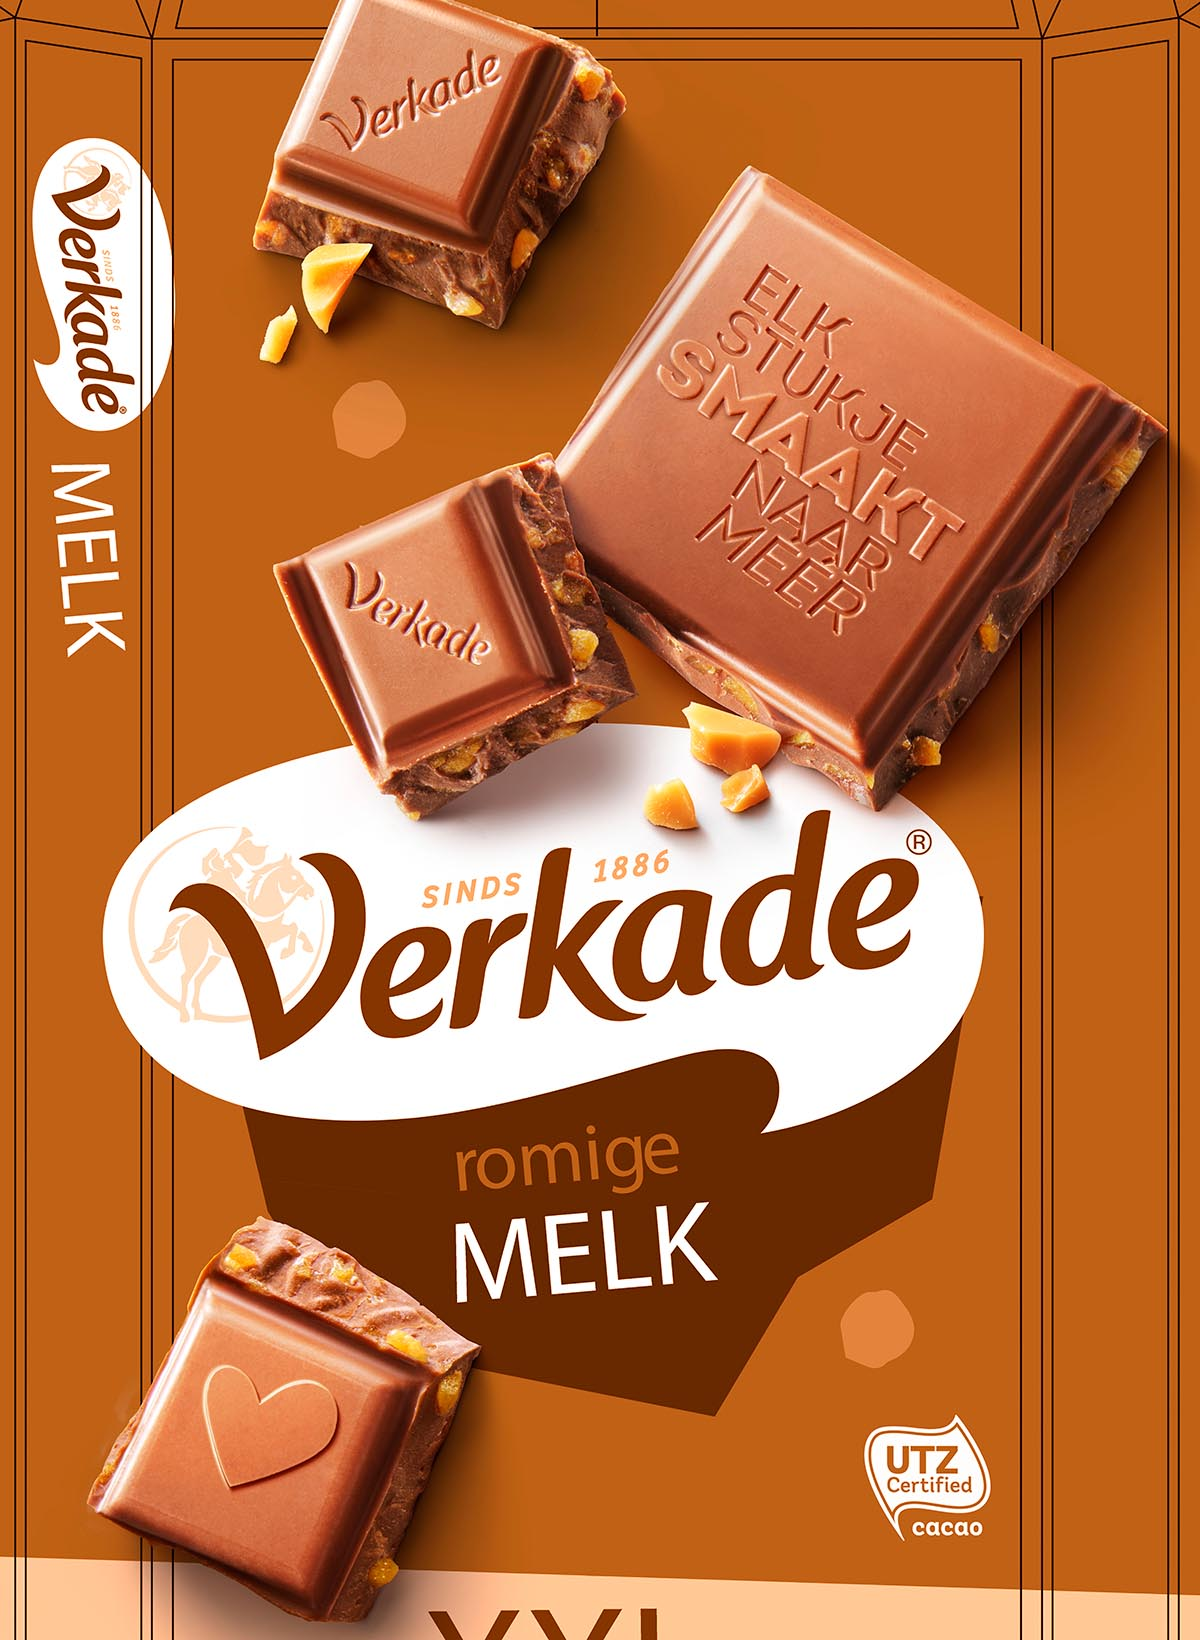 Packaging photography of Verkade's caramel chocolate made by Studio_m Photography Amsterdam